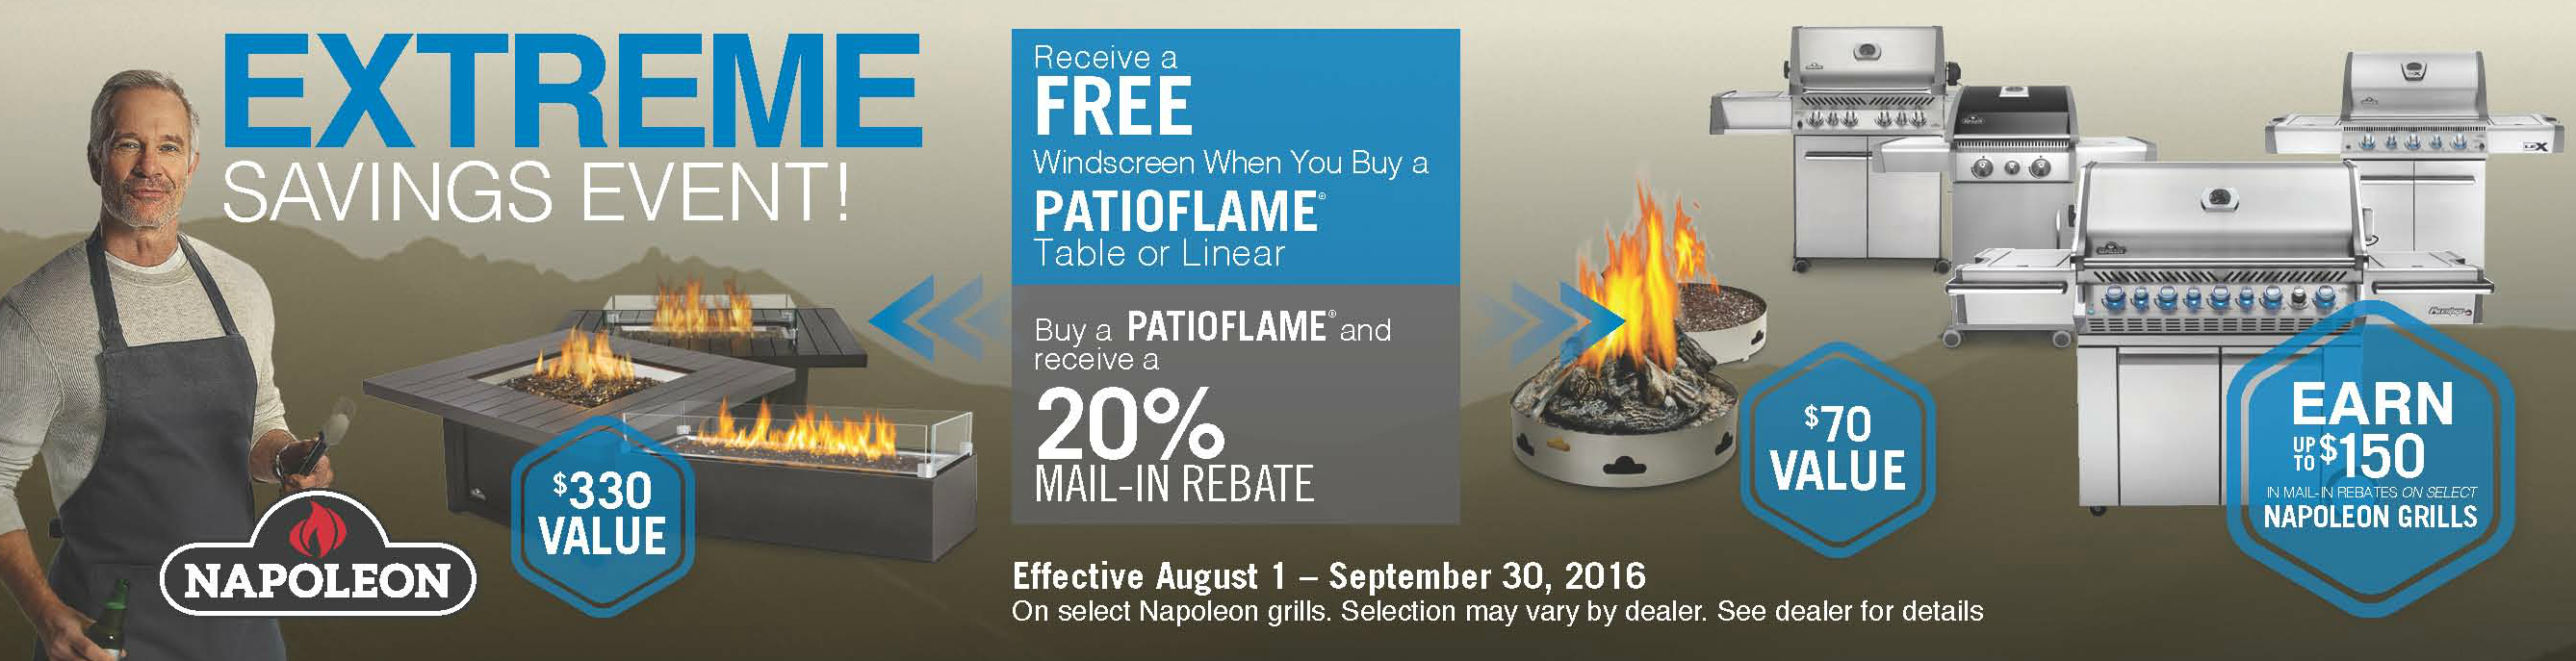 extreme-savings-event-Gas-Grill